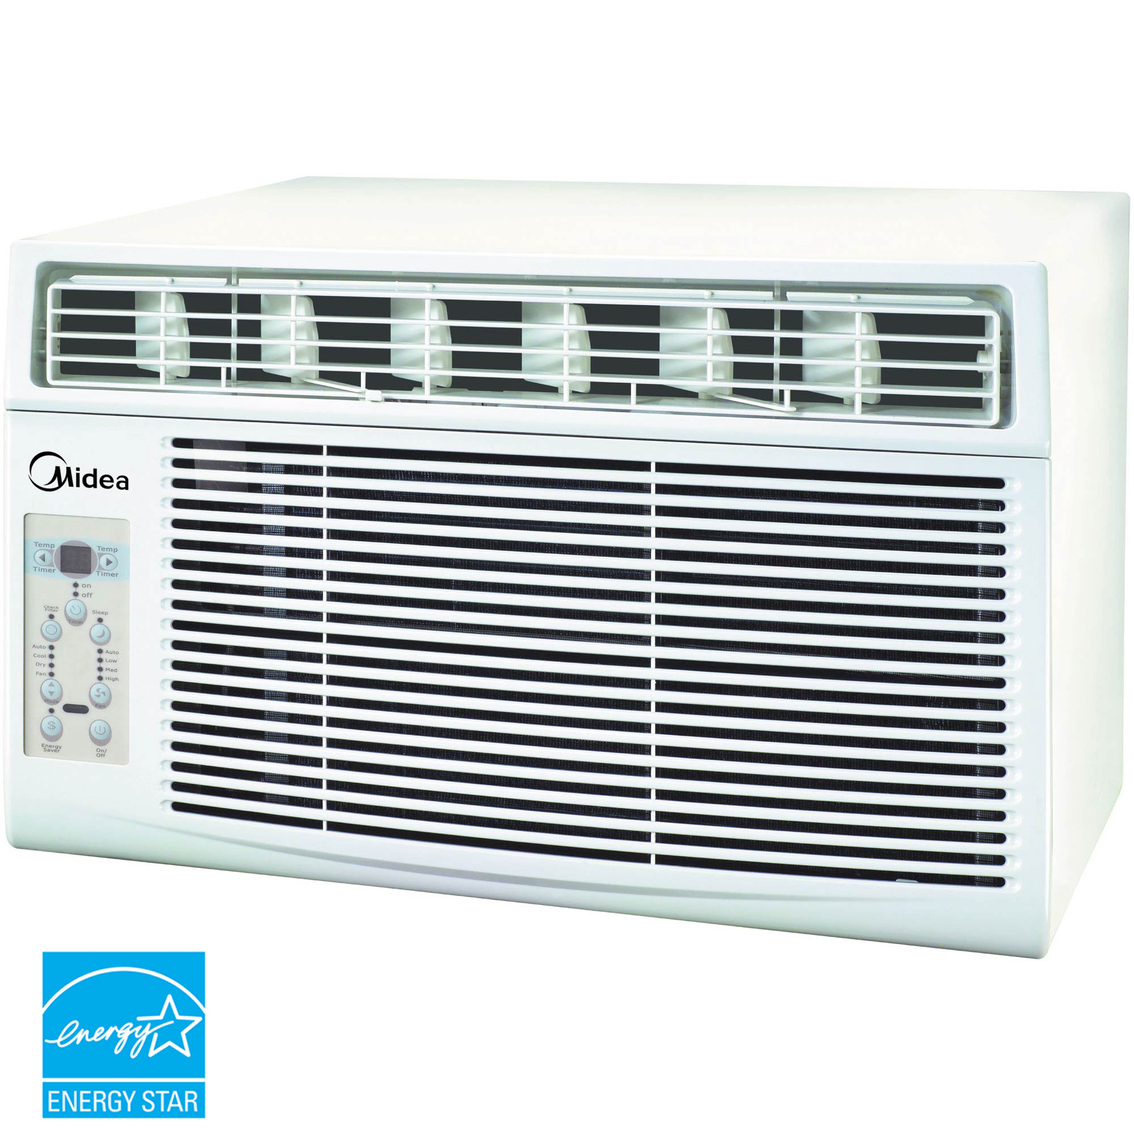 Midea 12 000 btu window air conditioner window air for 12000 btu window ac